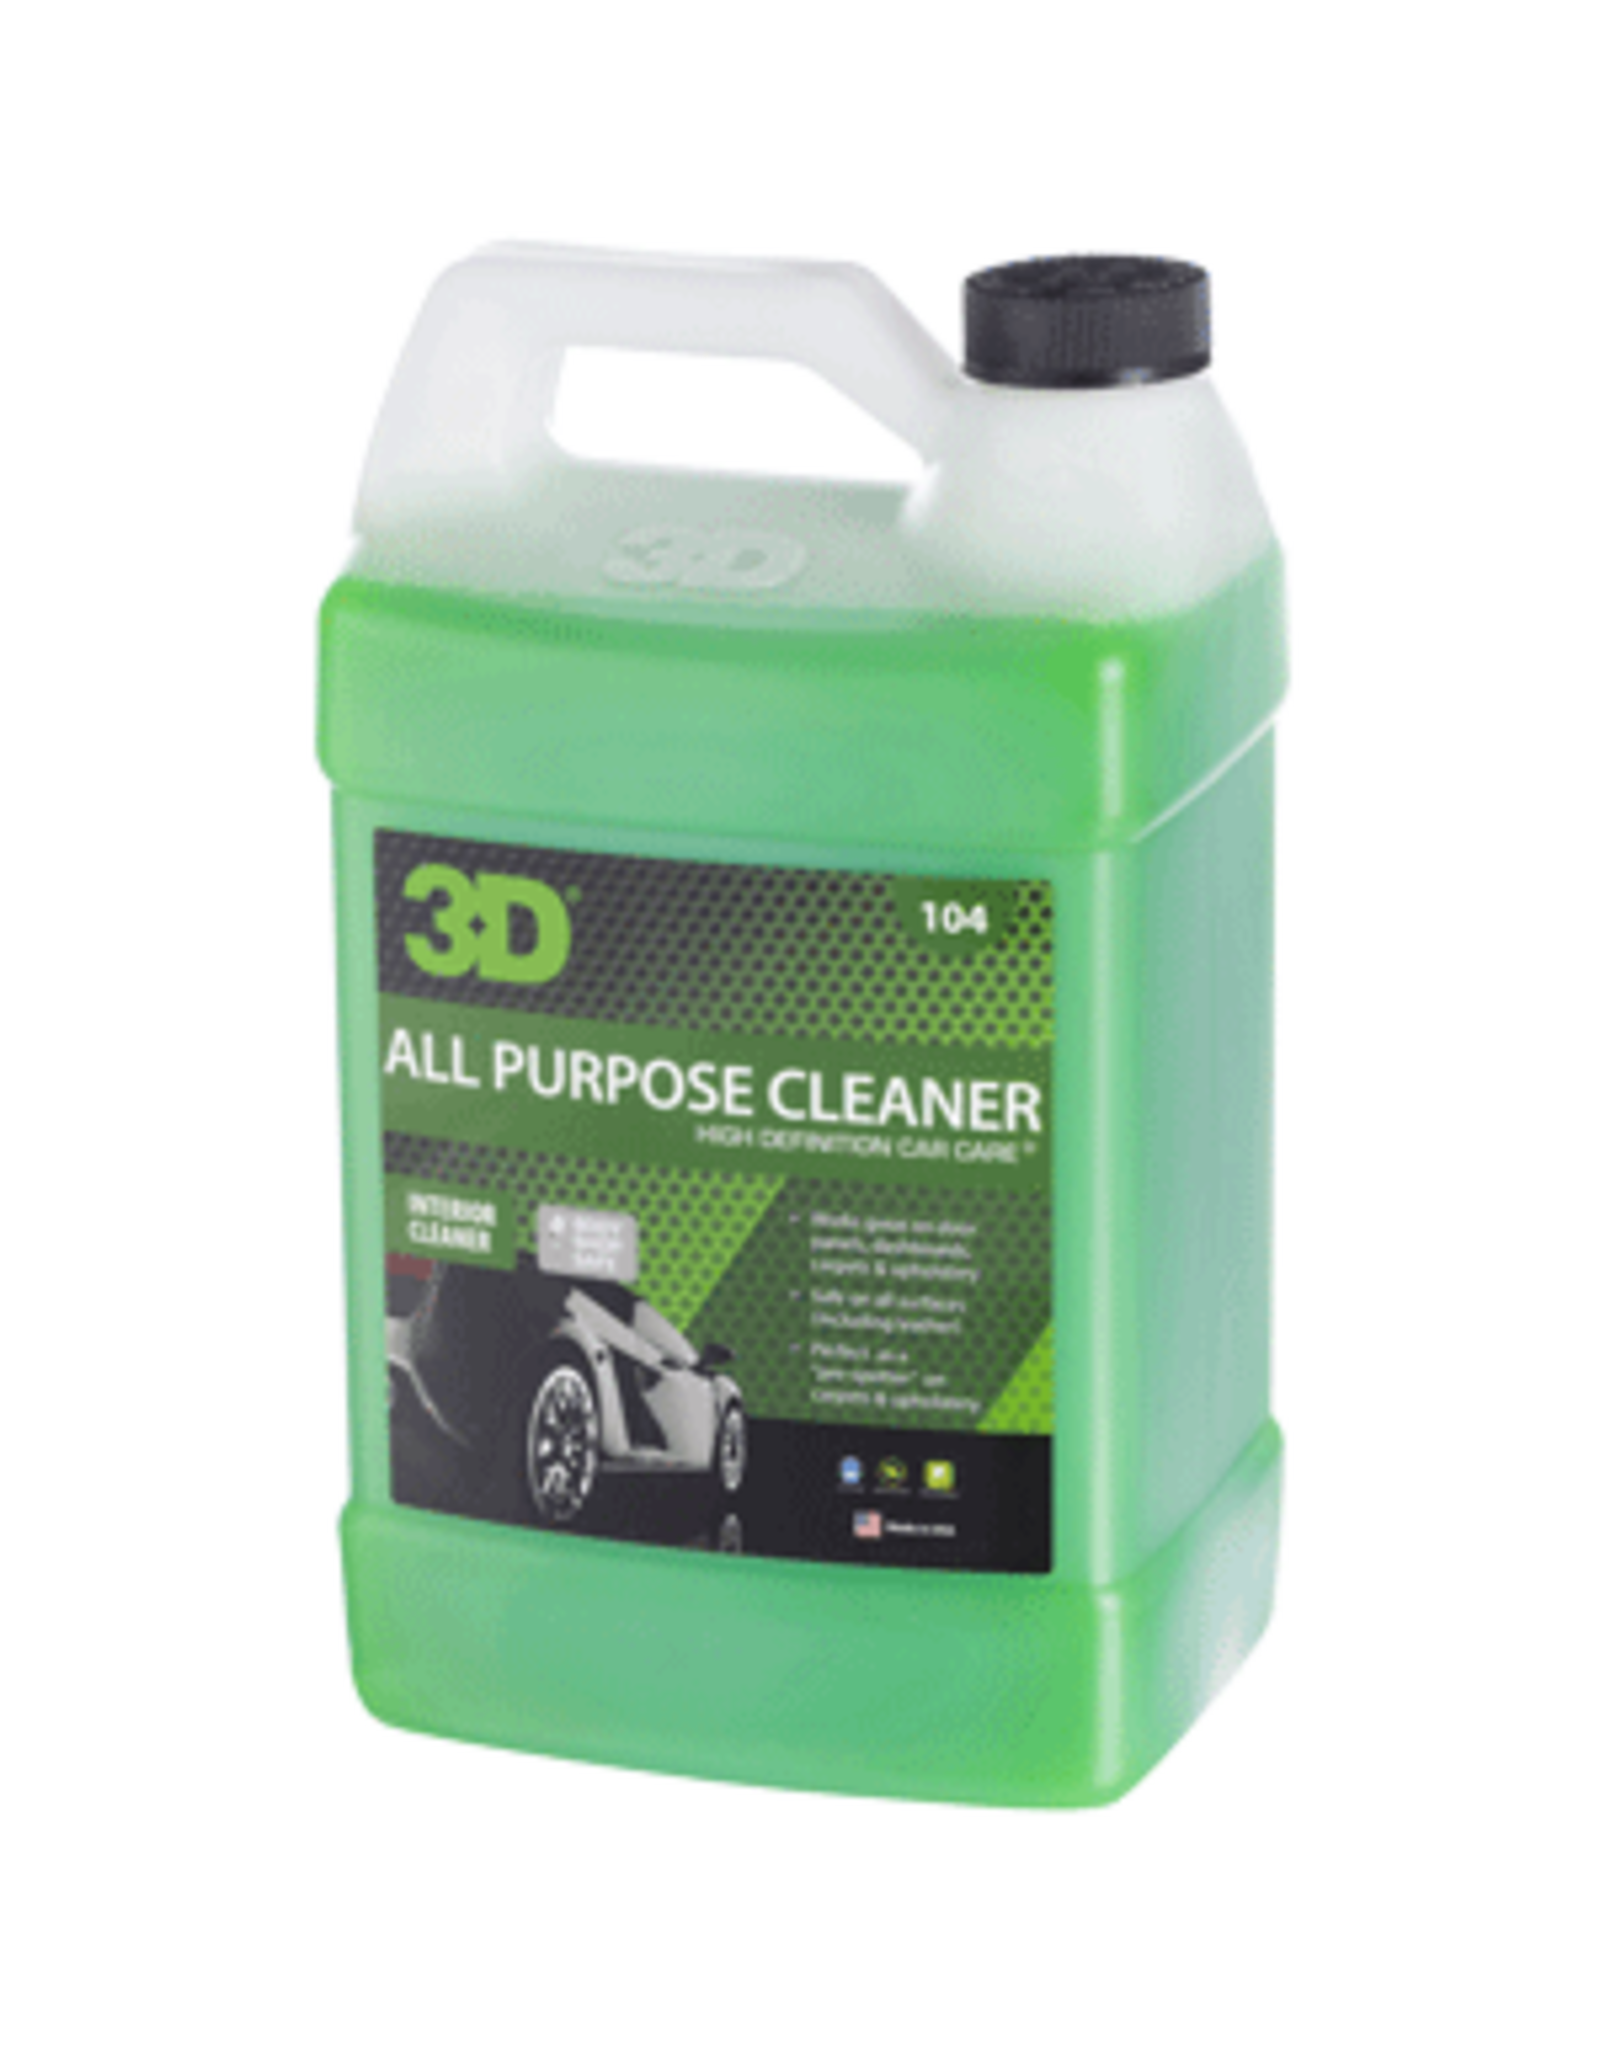 3D PRODUCTS 3D All Purpose Cleaner - 1 Gallon / 3.78 lt Can